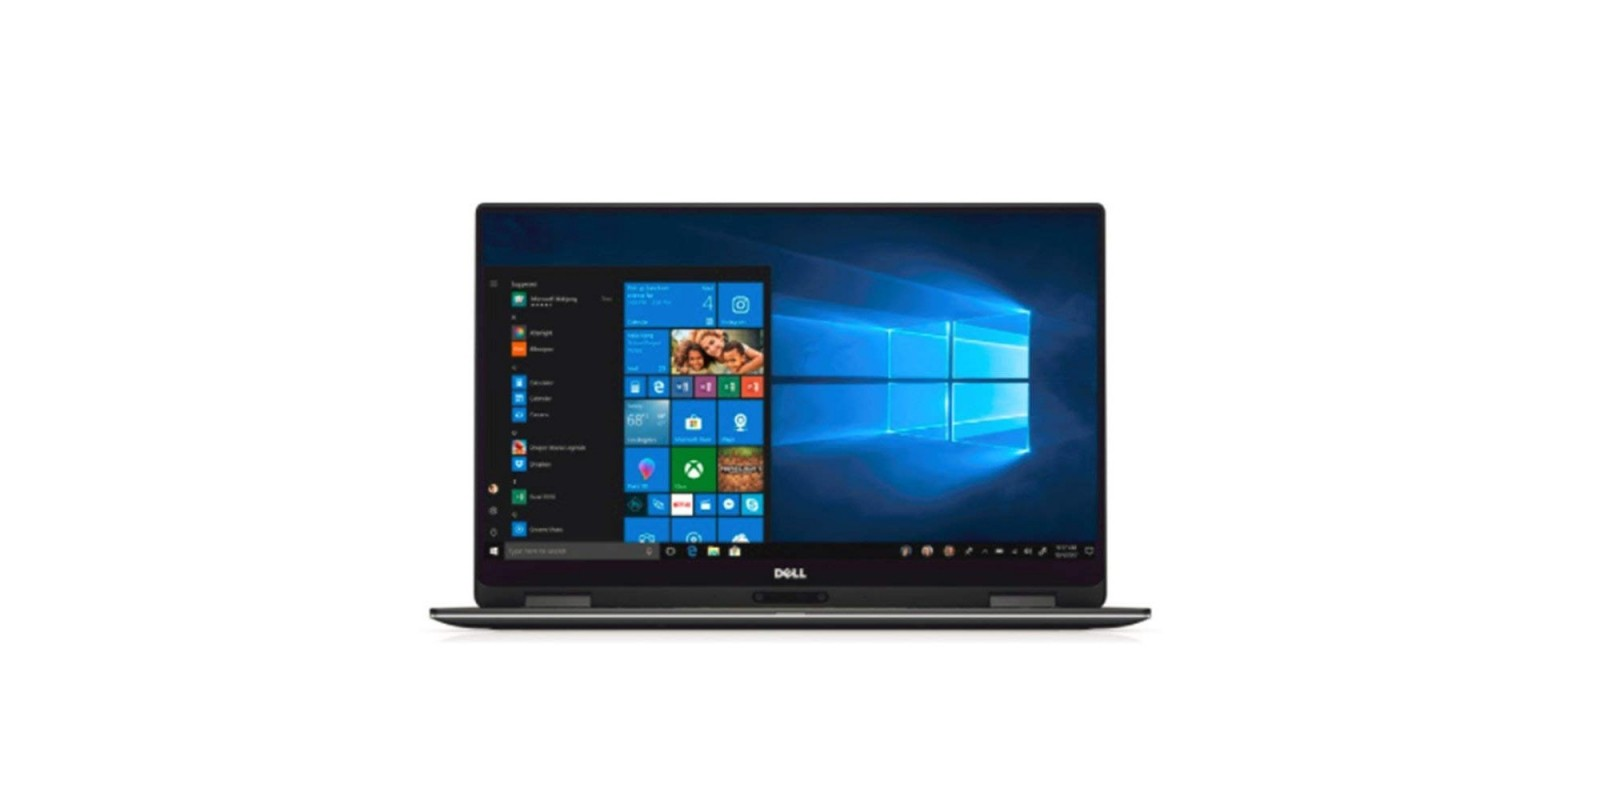 Dell XPS 13 9365 13.3 2 in 1 Laptop FHD Touchscreen 7th Gen Main